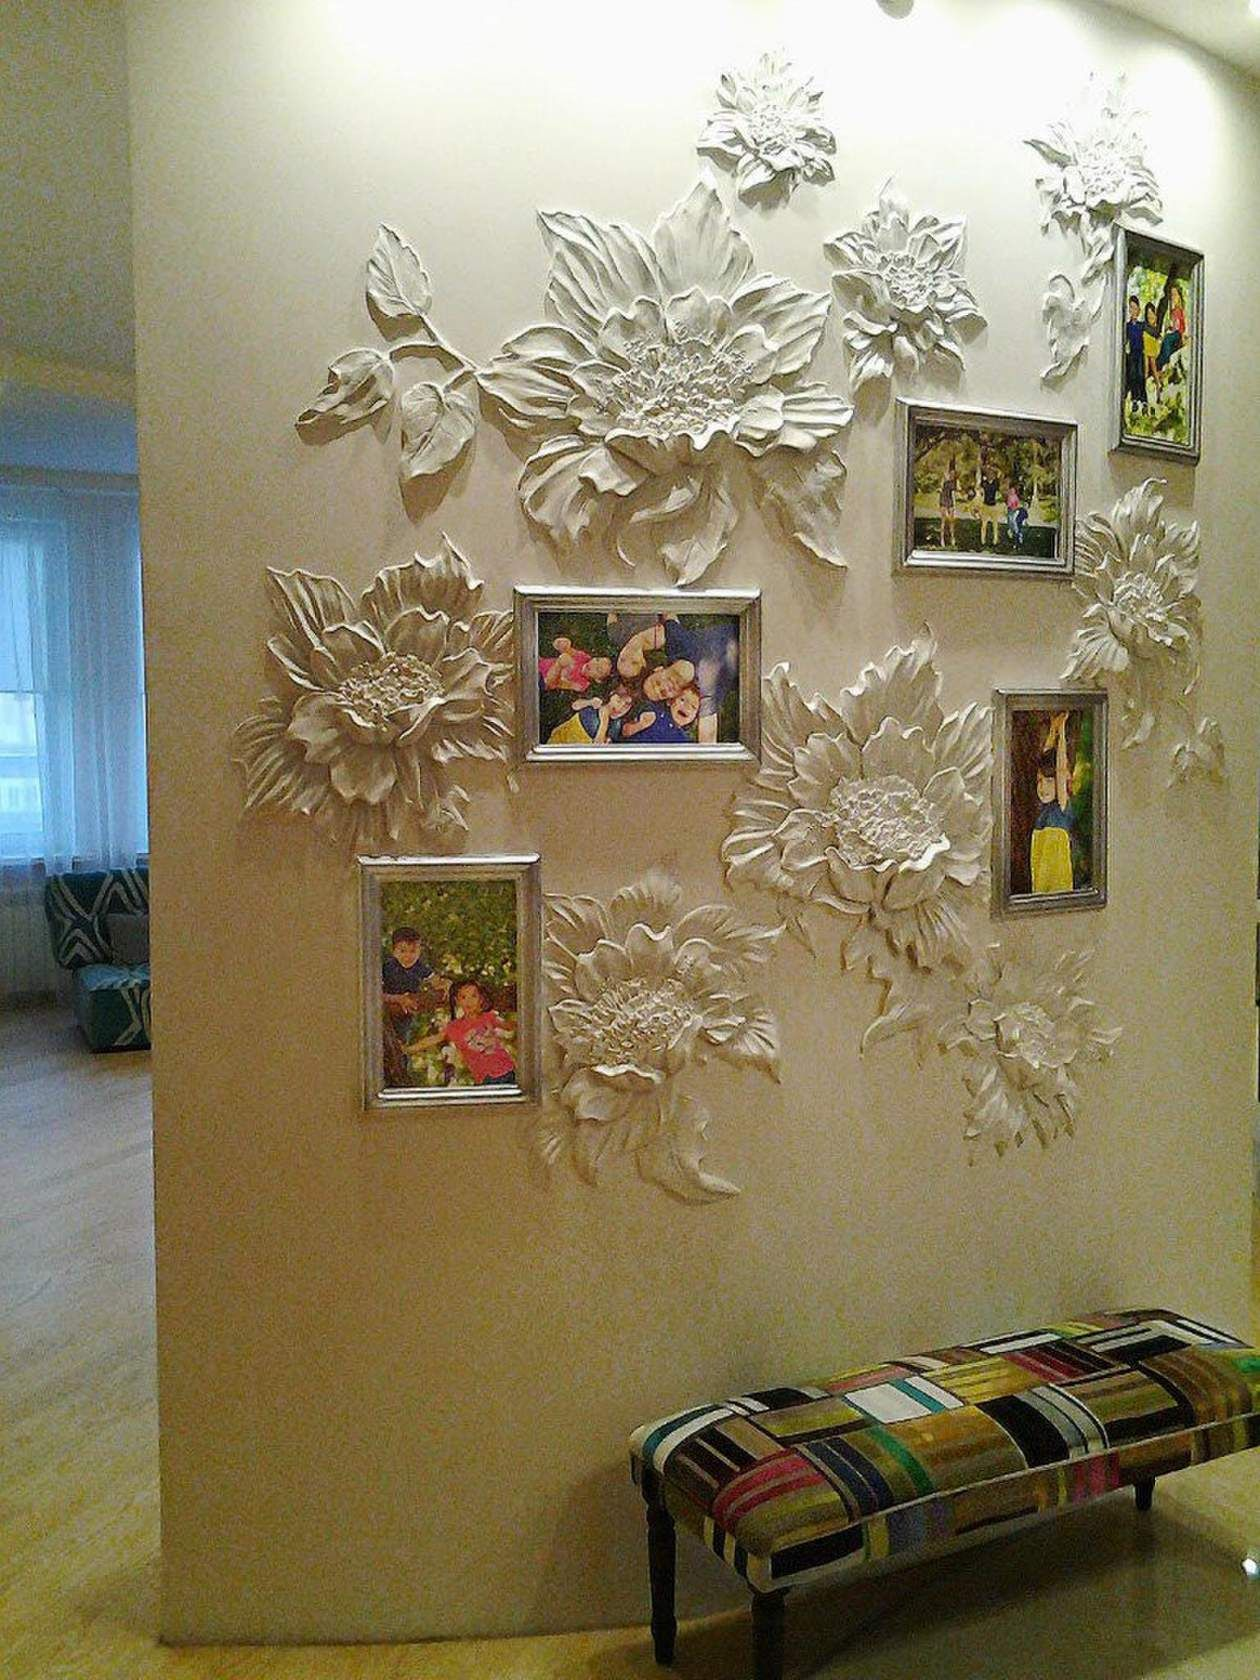 The picture frames could be changed to a similar material for the picture frames could be changed to a similar material for better flow plaster artdecorative plastermural artstencil wall amipublicfo Gallery